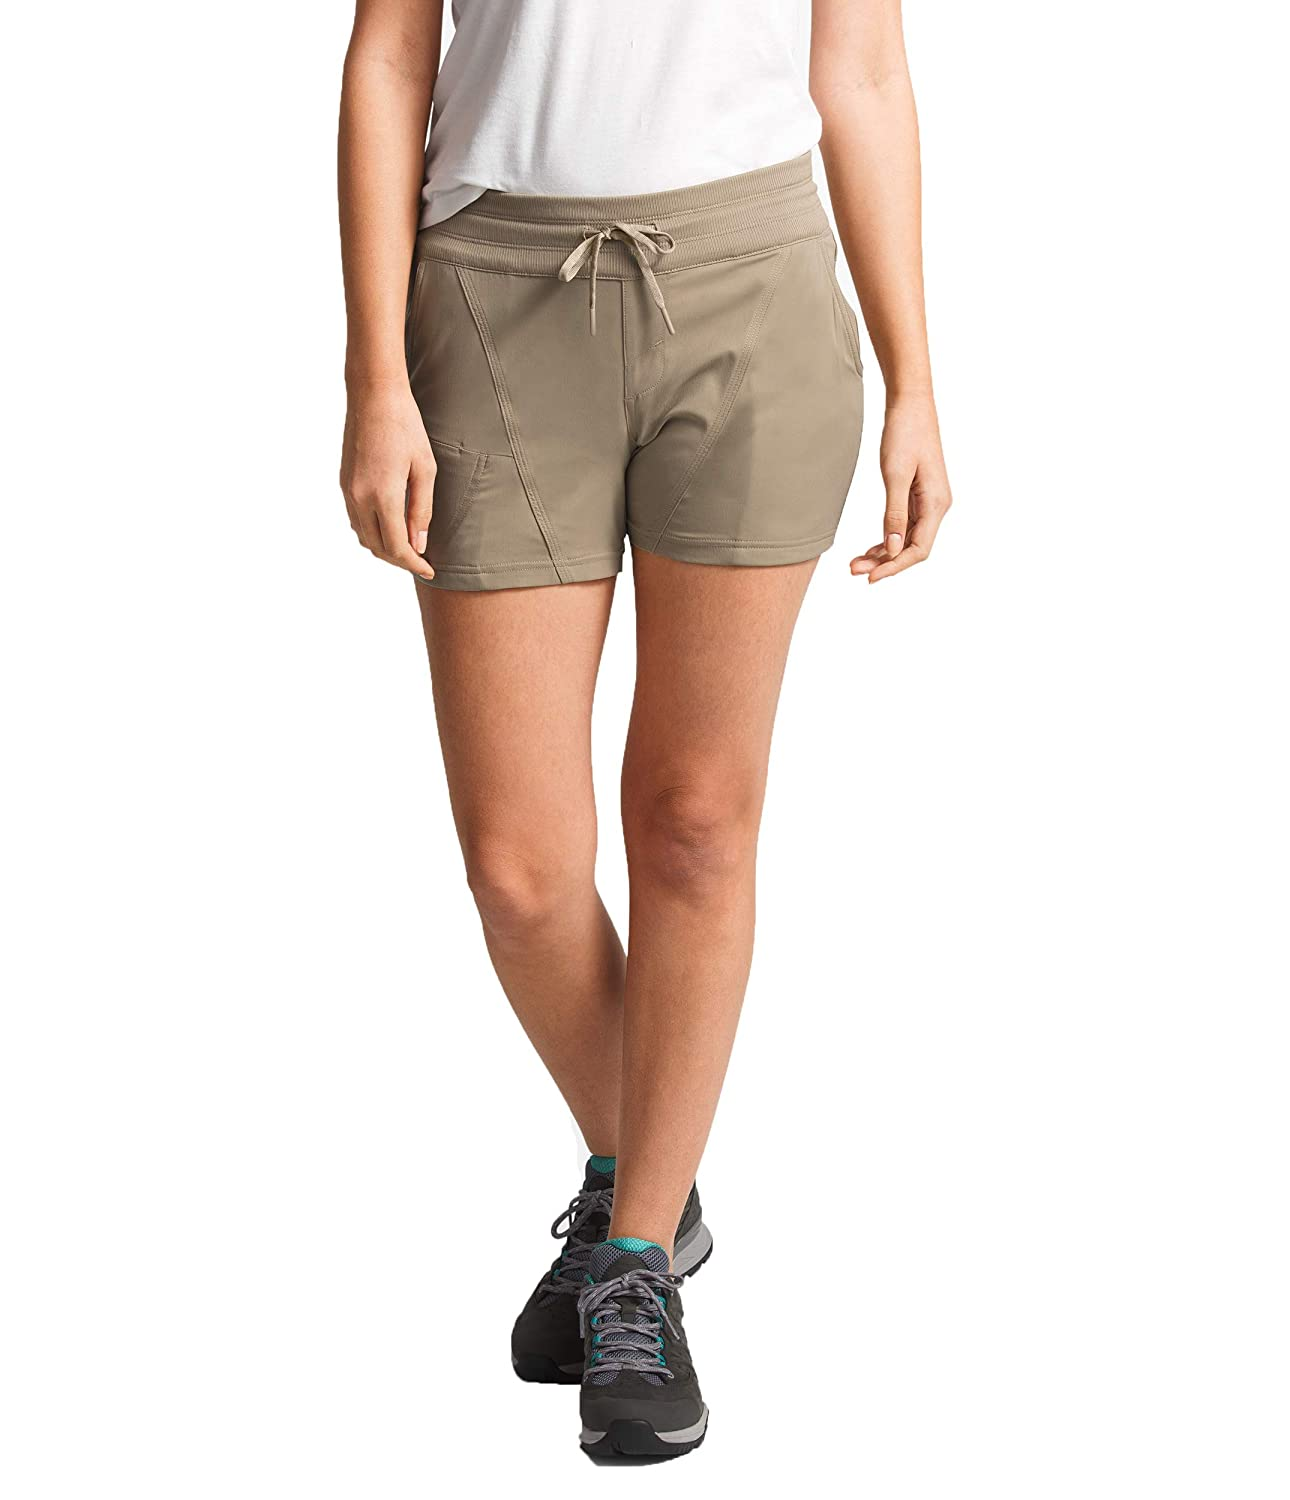 c4dd51466 The North Face Women's Aphrodite 2.0 Shorts